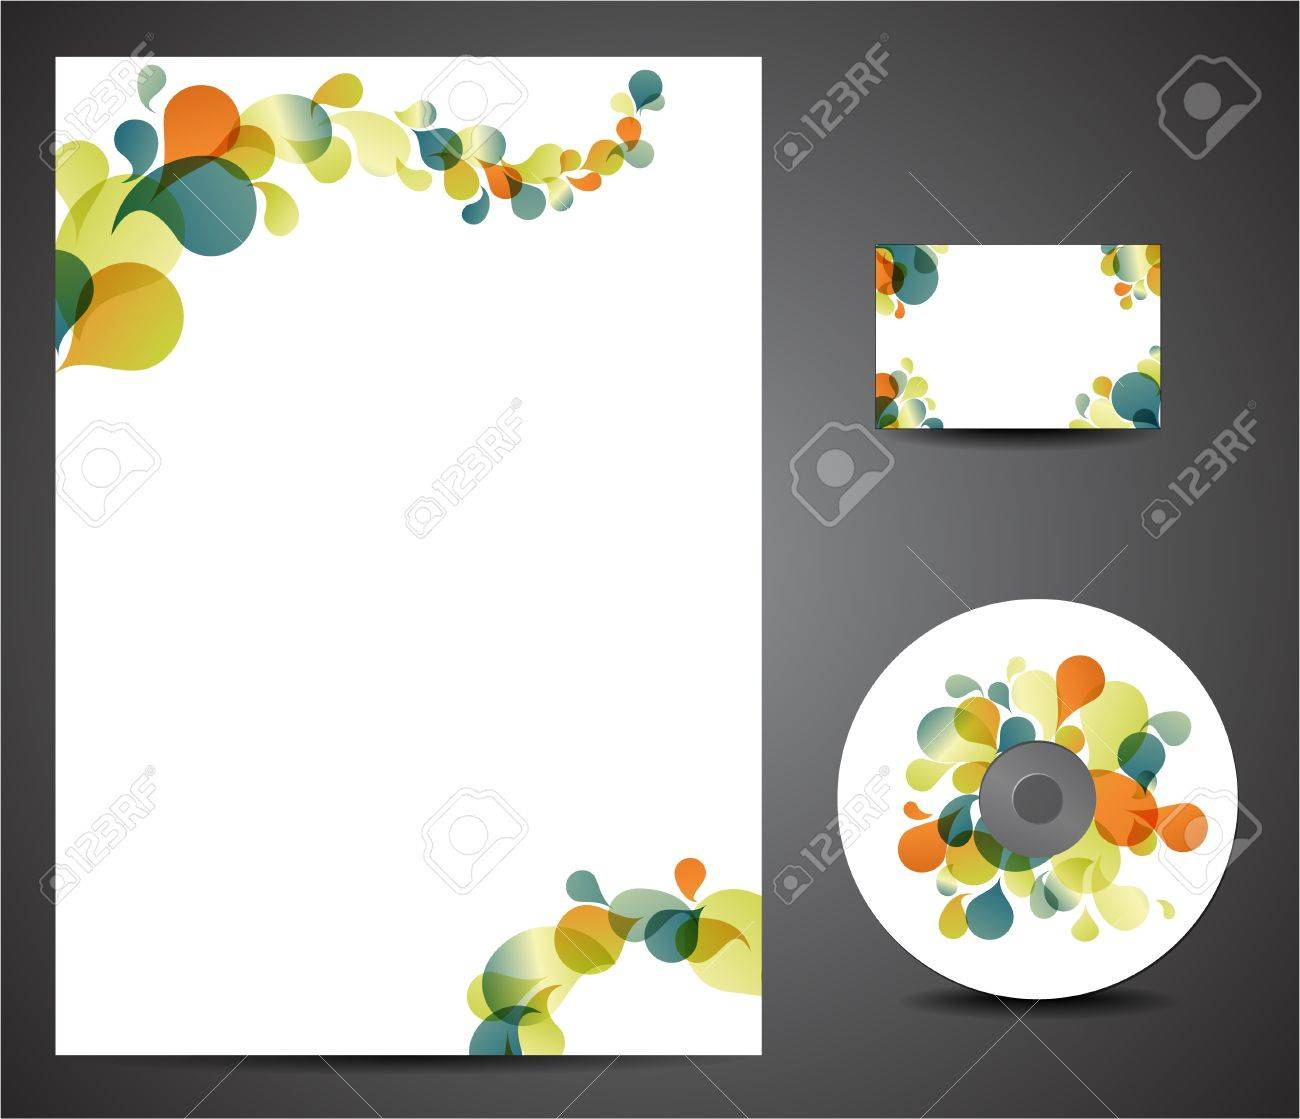 Retro Design Template Set - Business Card, Cd, Paper Royalty Free ...